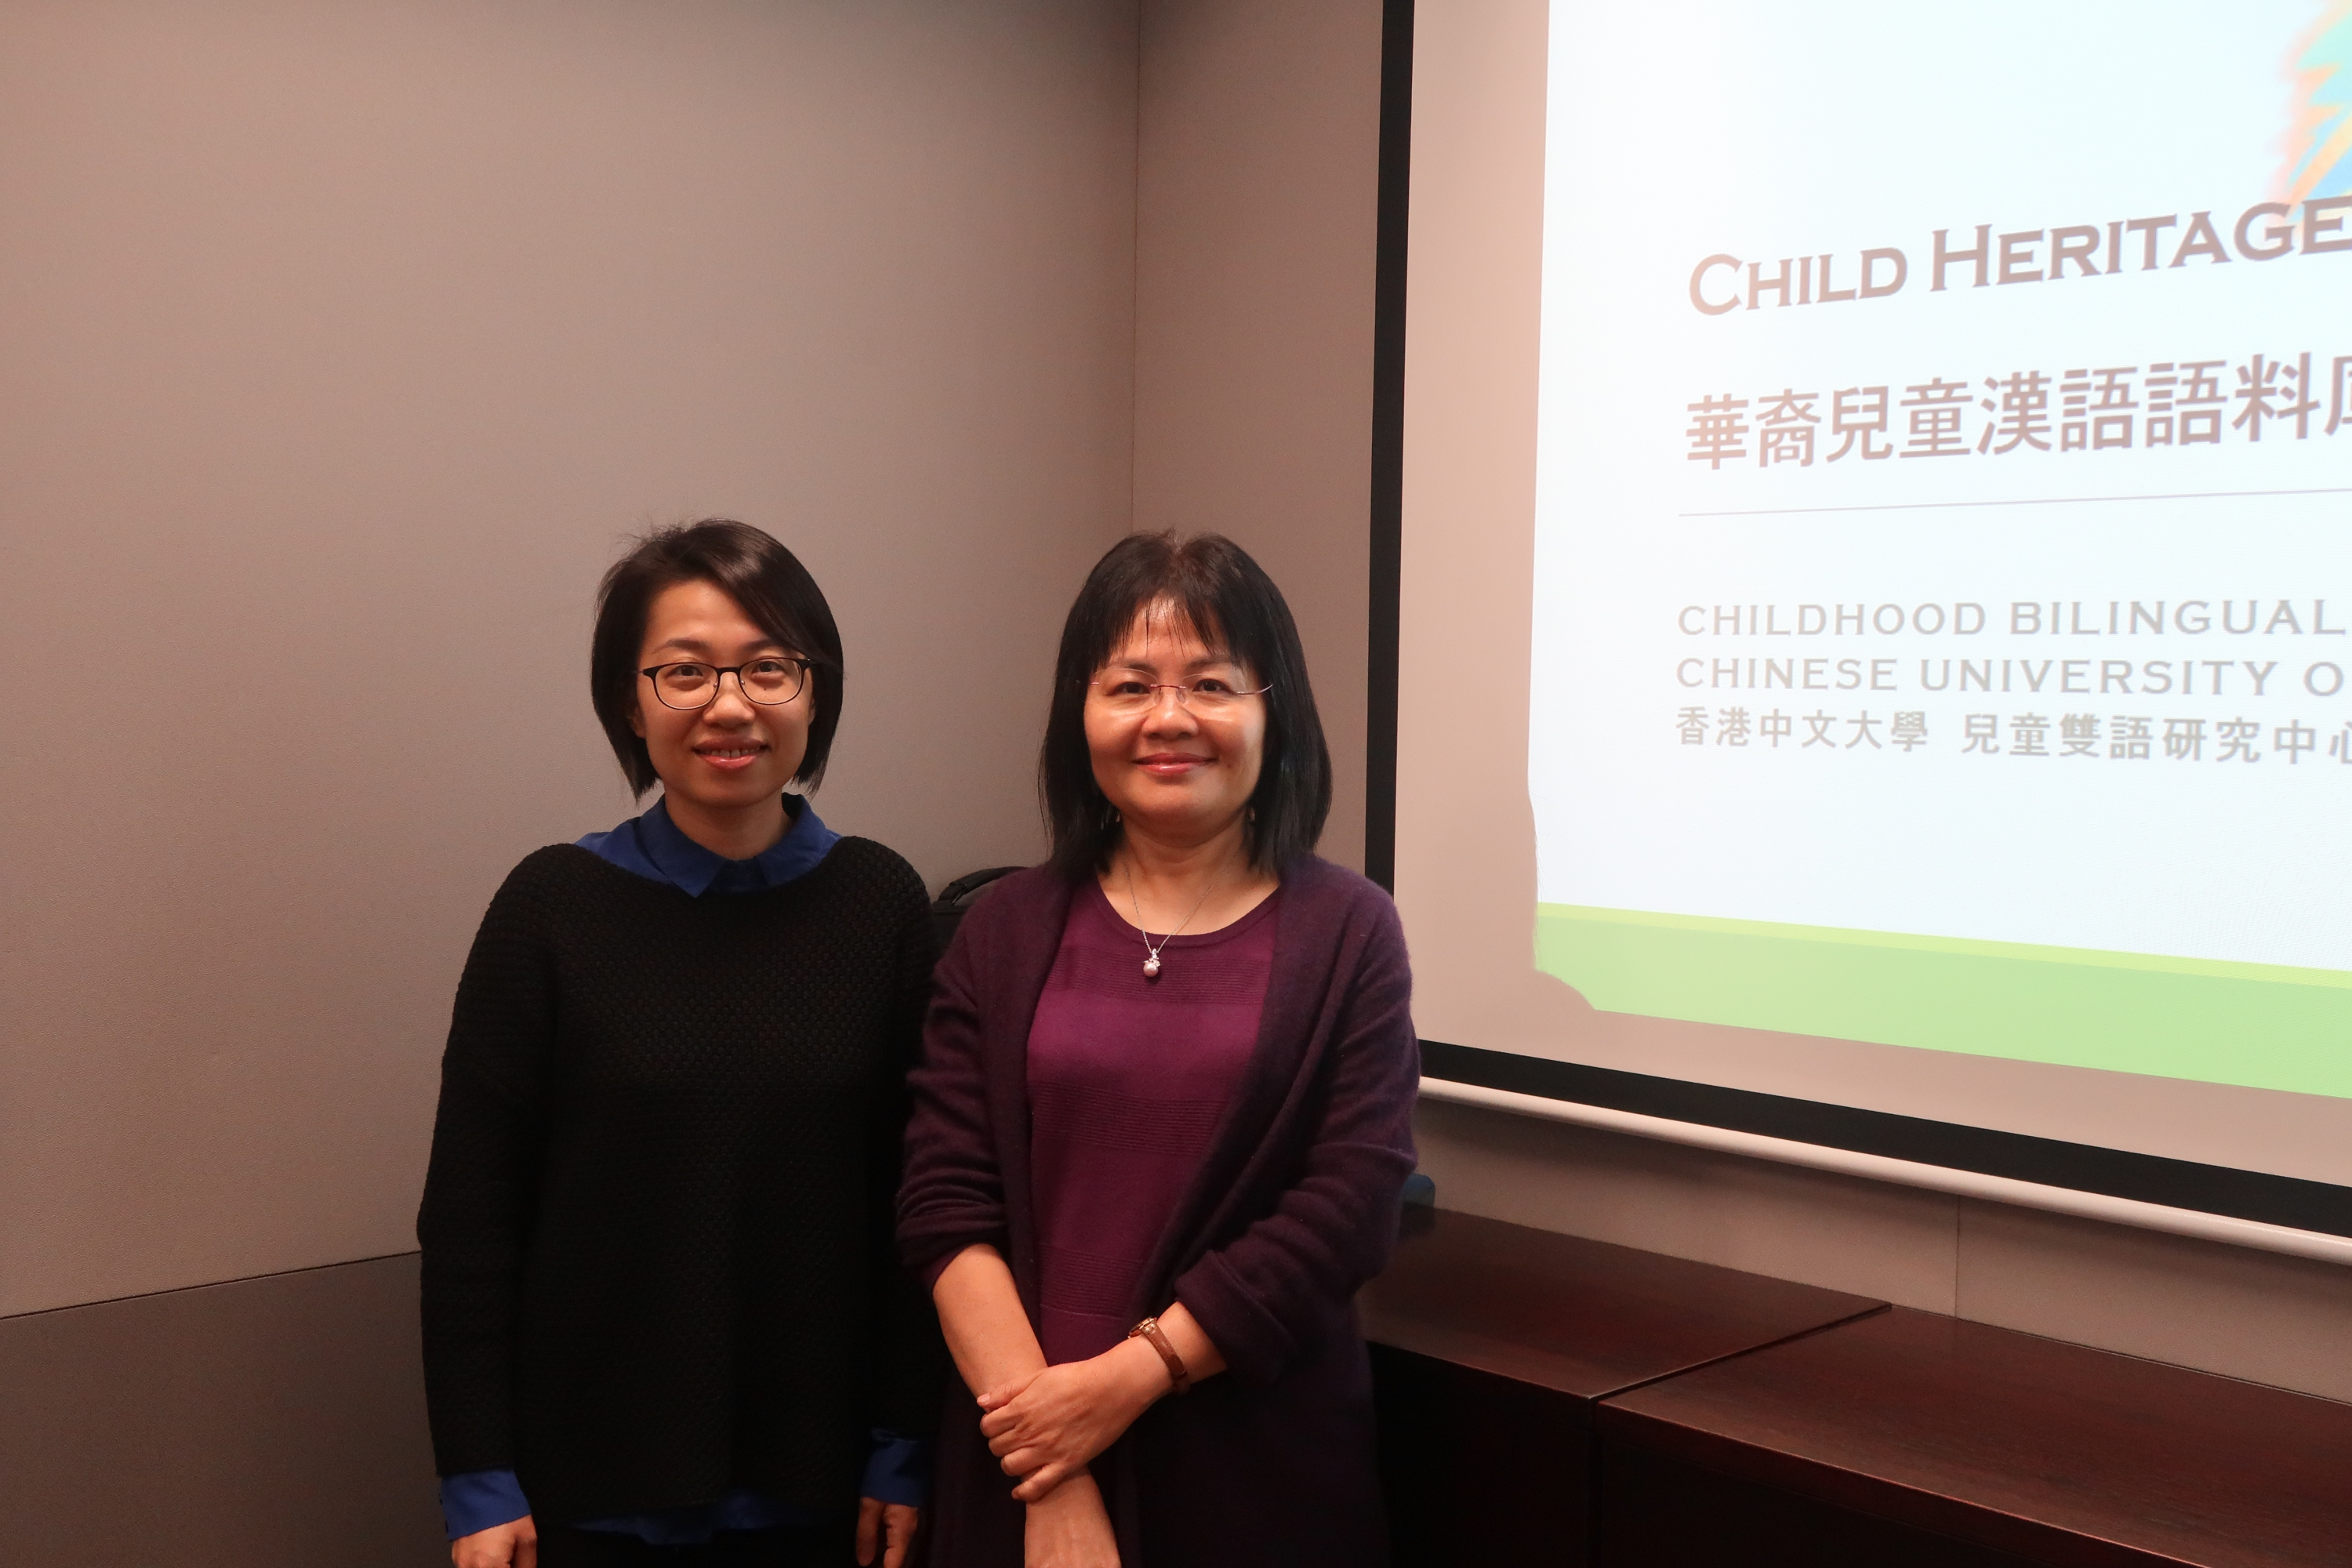 Prof. Virginia Yip (right), Director of Childhood Bilingualism Research Centre and Co-Director of the University of Cambridge-Chinese University of Hong Kong Joint Laboratory for Bilingualism and Prof. Ziyin Mai, Research Assistant Professor, Brain and Mind Institute announce the launch of the World's First Child Heritage Chinese Language Corpus